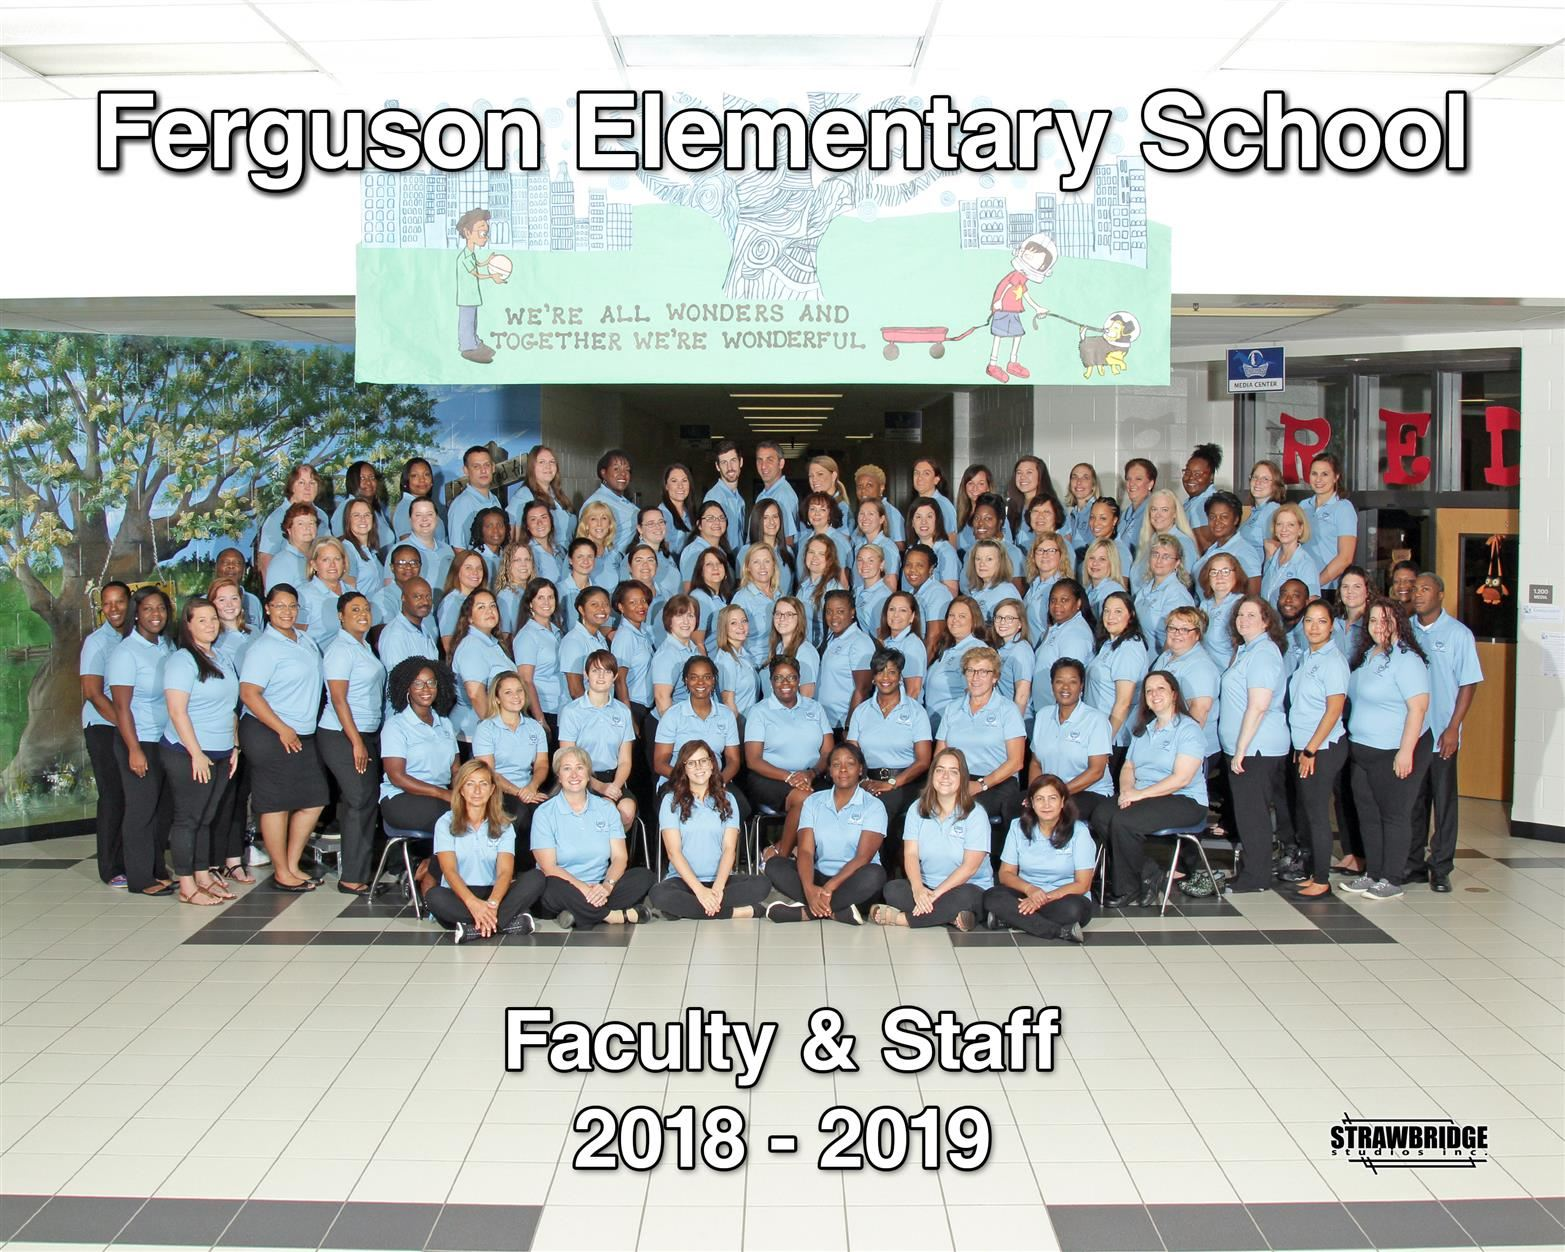 Ferguson Elementary group staff picture.